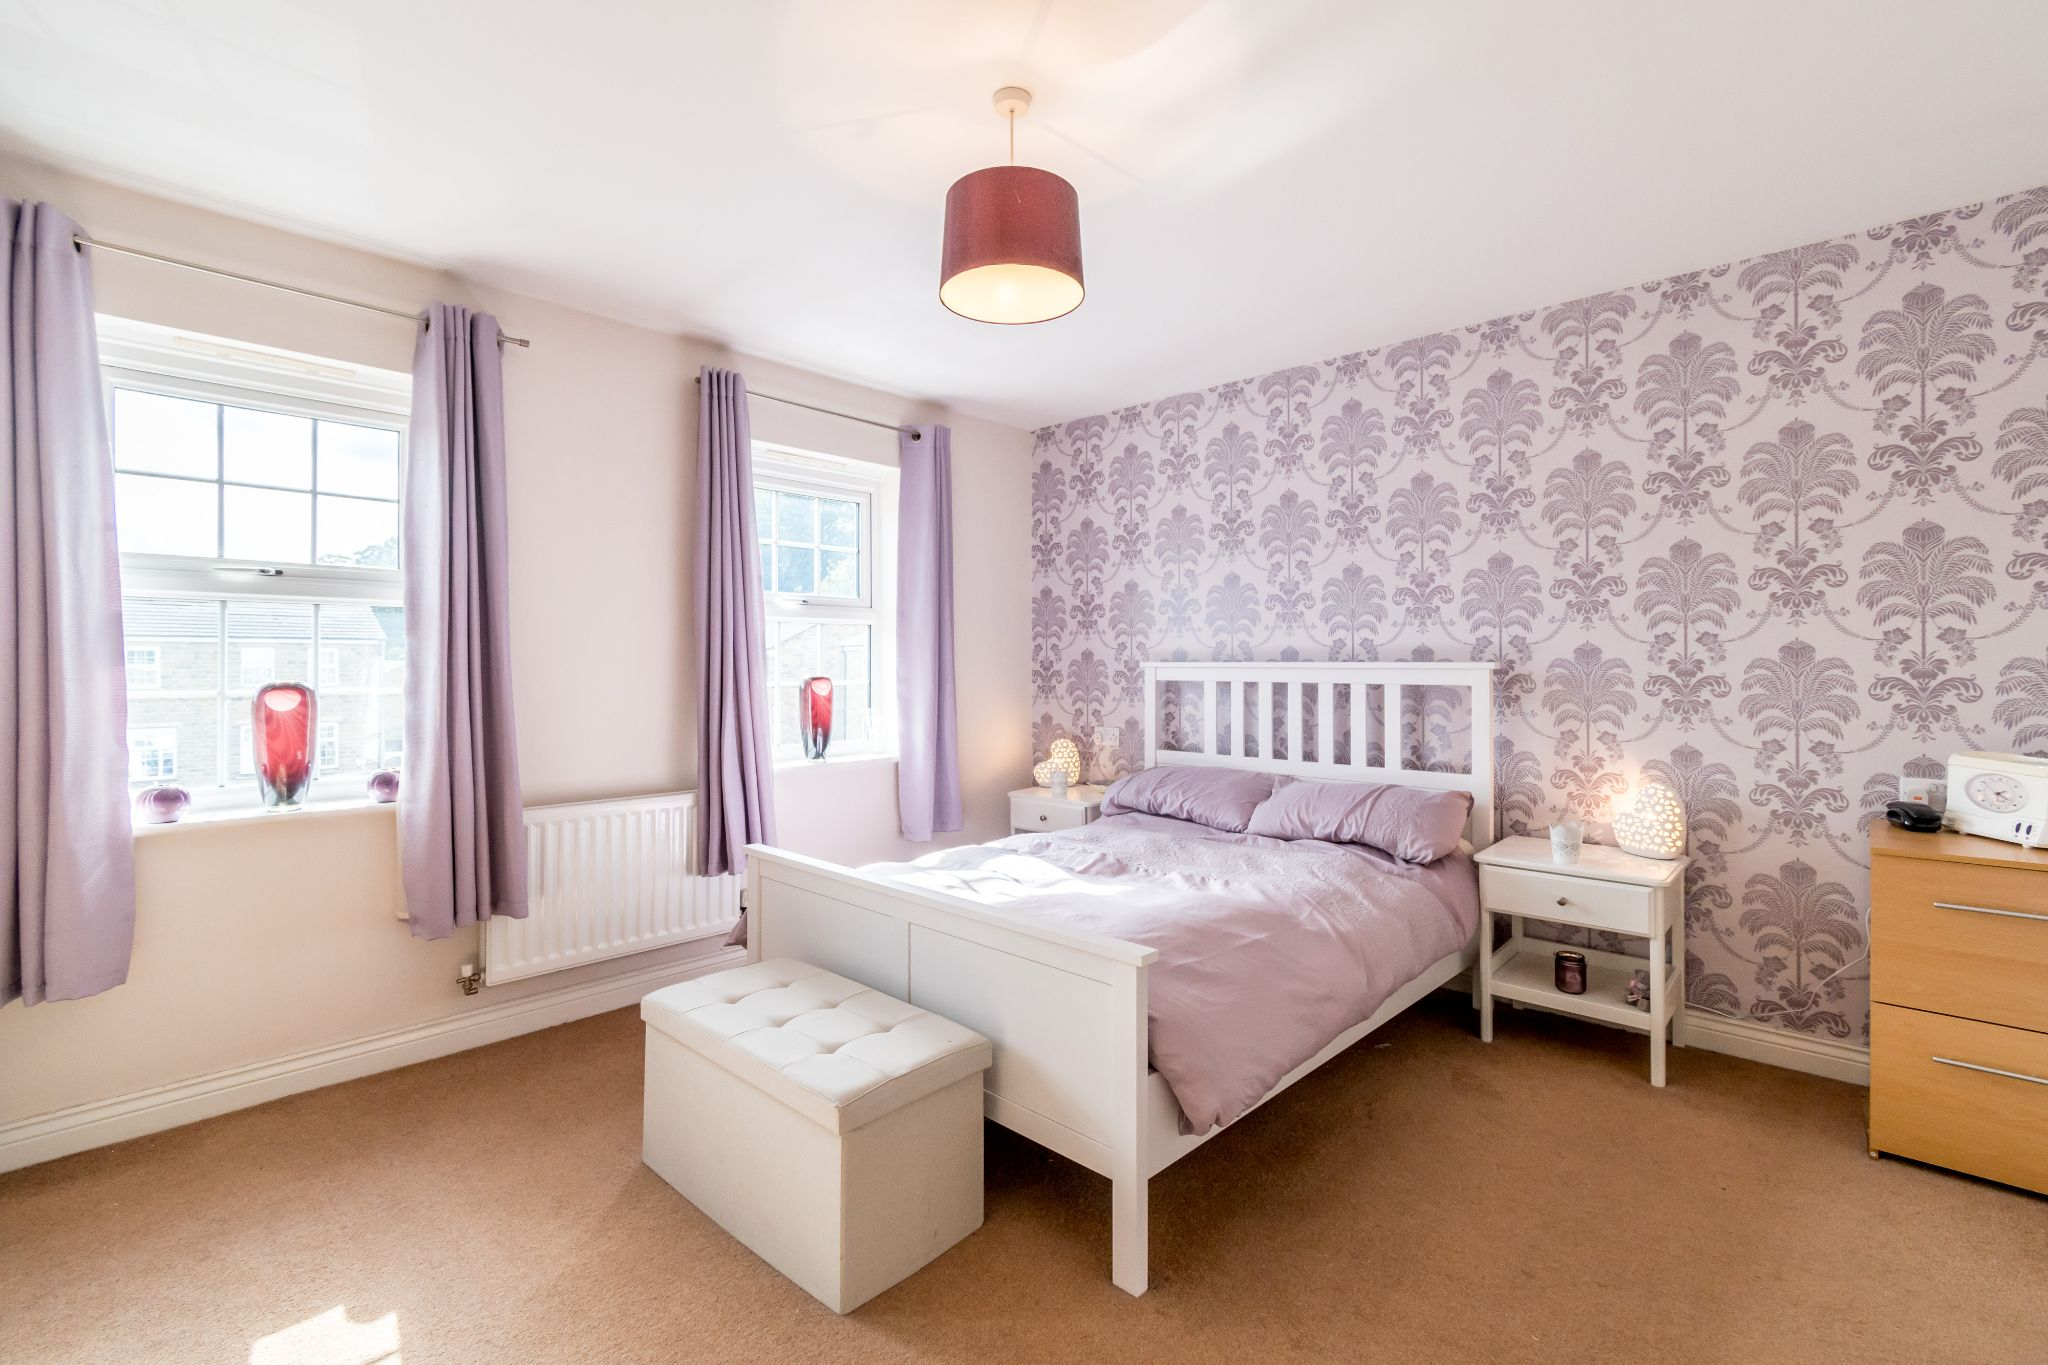 4 bedroom mid terraced house SSTC in Brighouse - Photograph 13